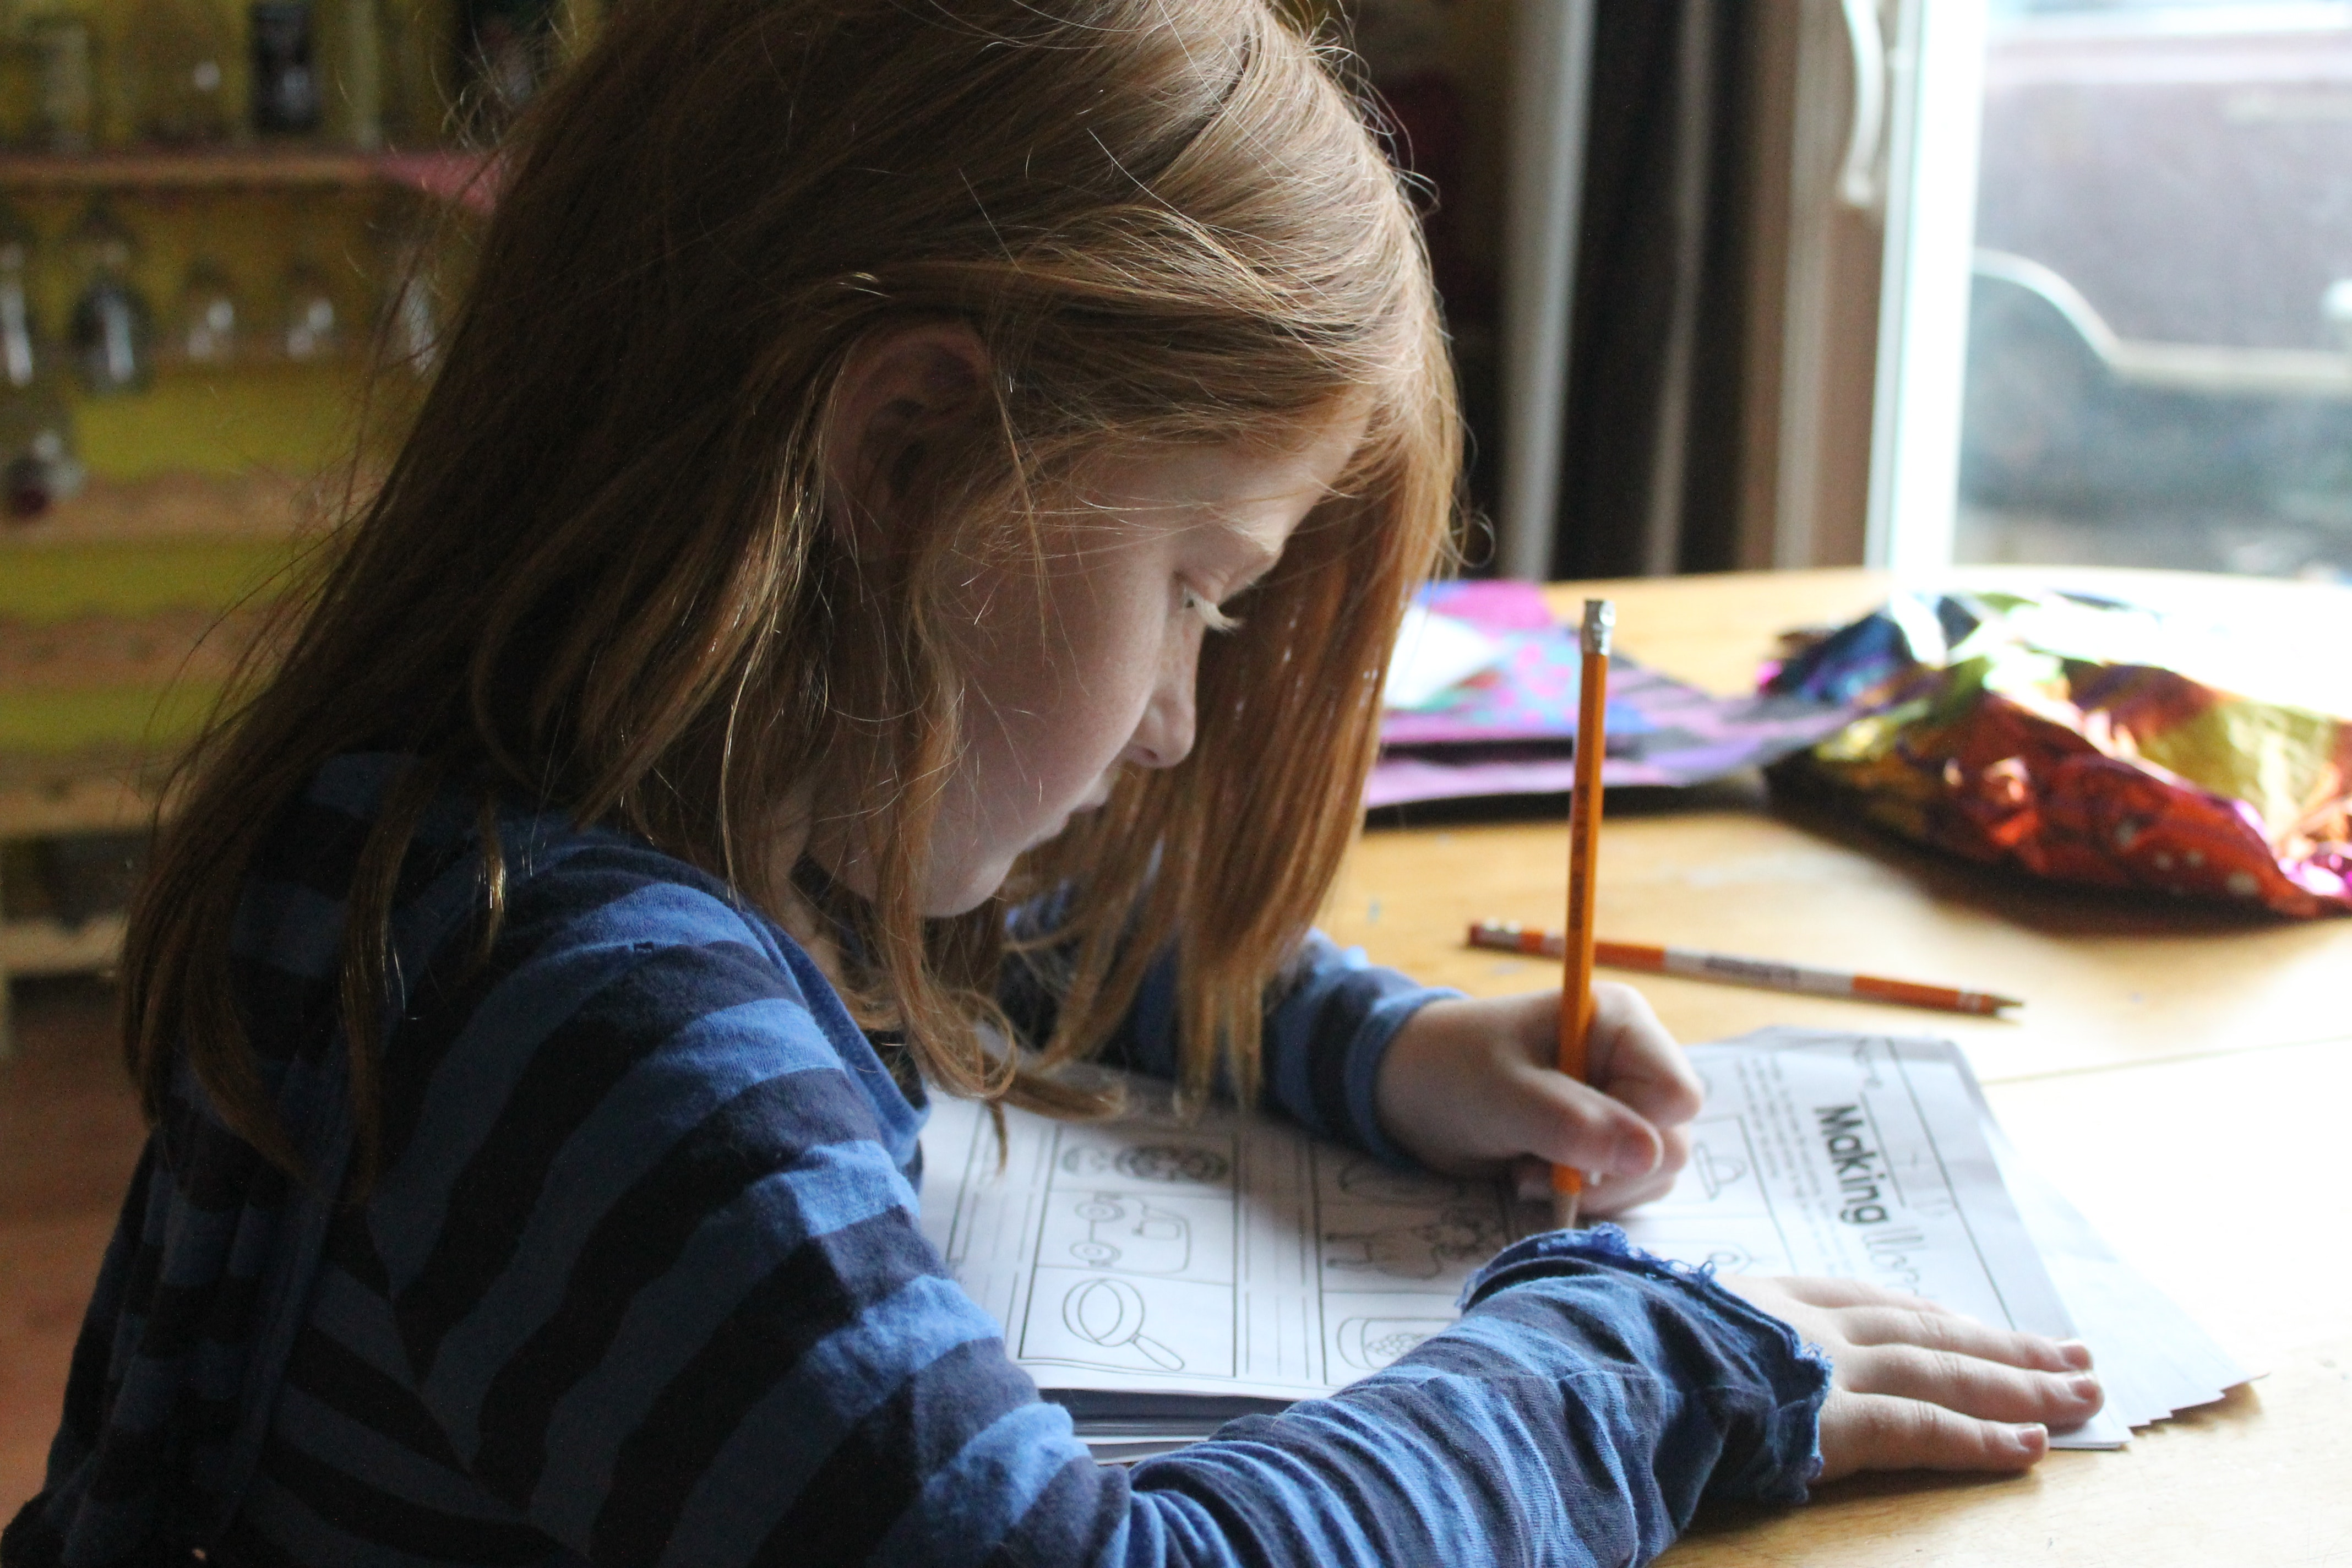 66% of Primary School Children Struggle With Anxiety